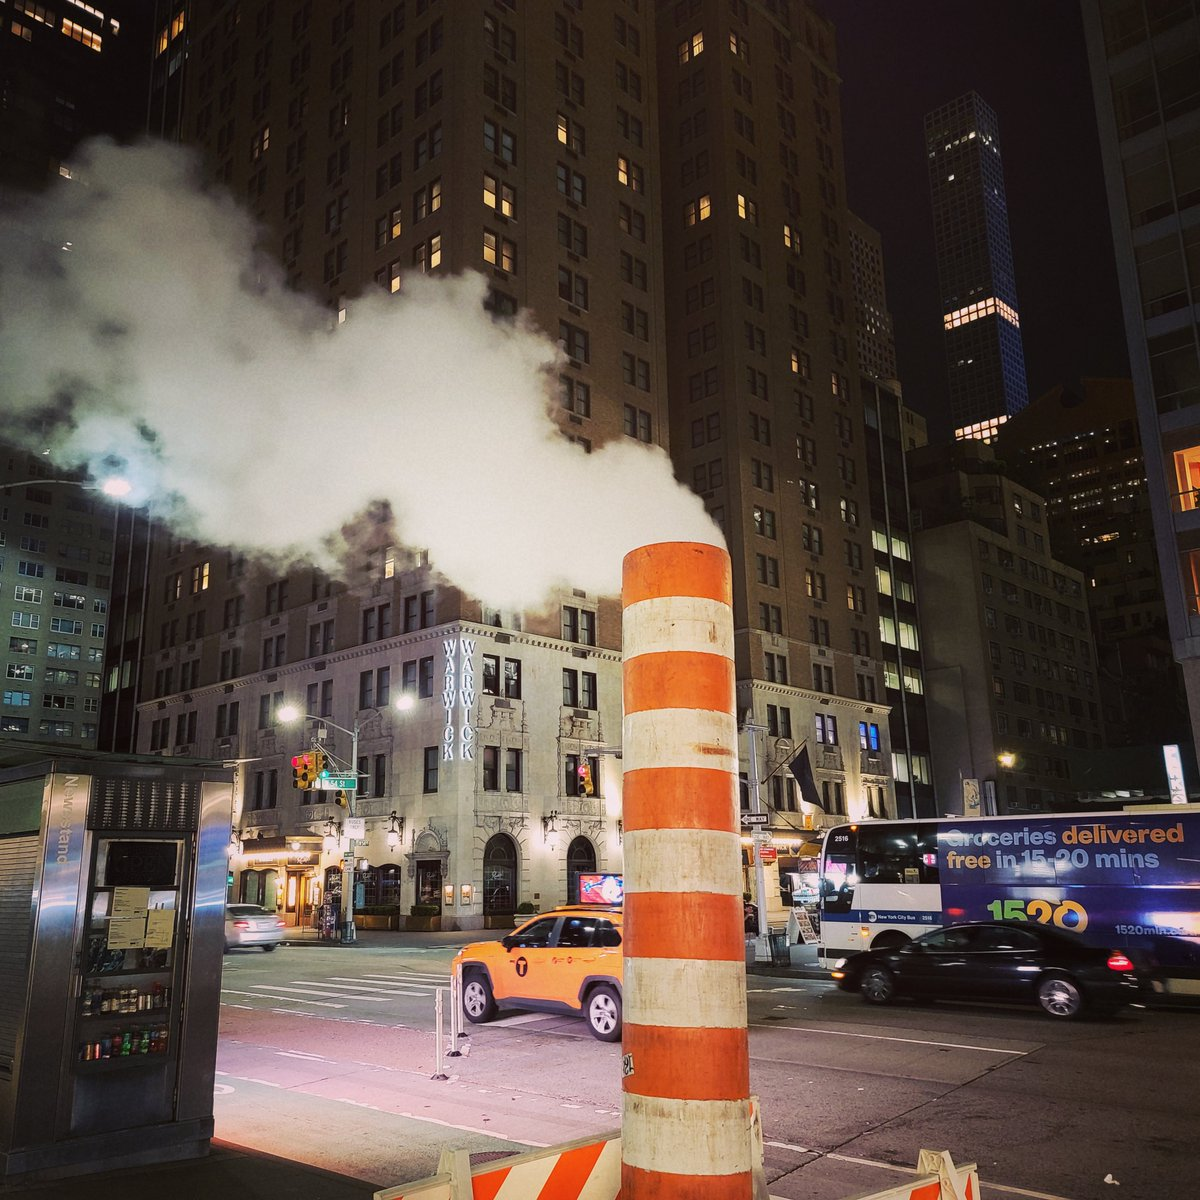 Just your basic mysterious ConEd plume of steam.  #NYC #coned #FridayFeeling @ConEdison https://t.co/8atd5qMgG7